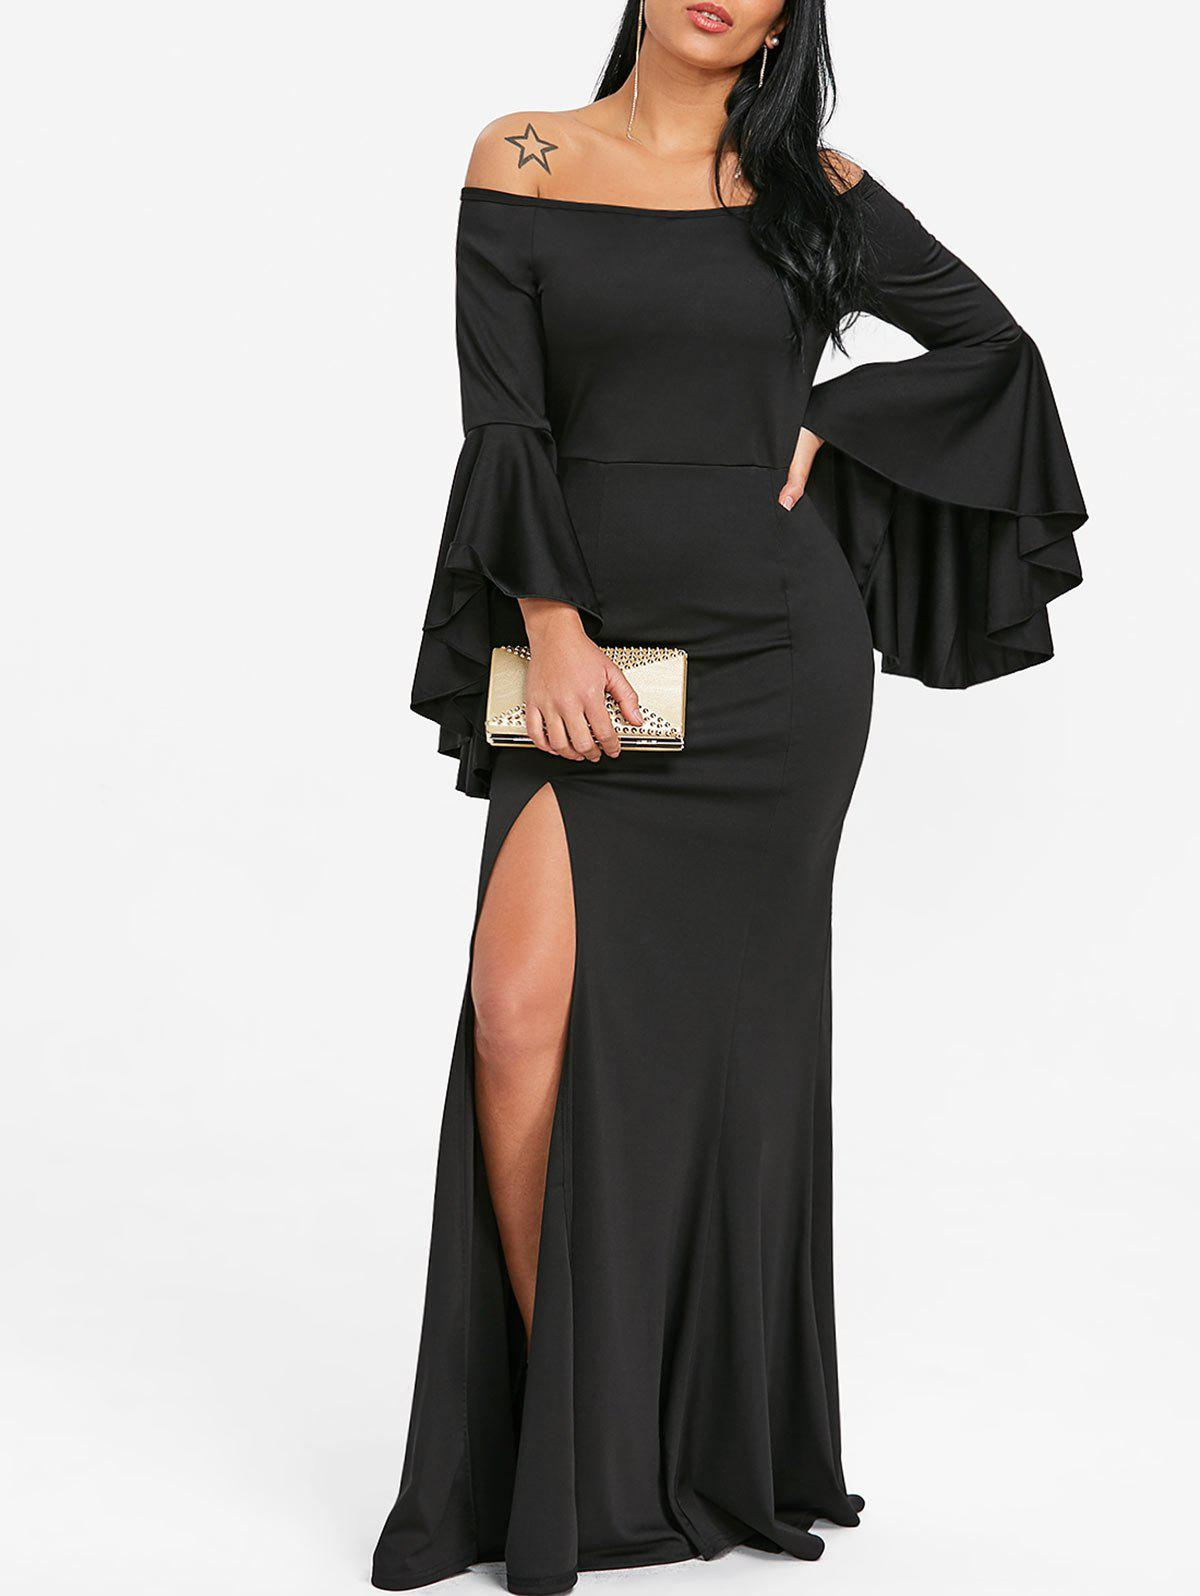 Shop Off The Shoulder High Slit Prom Dress